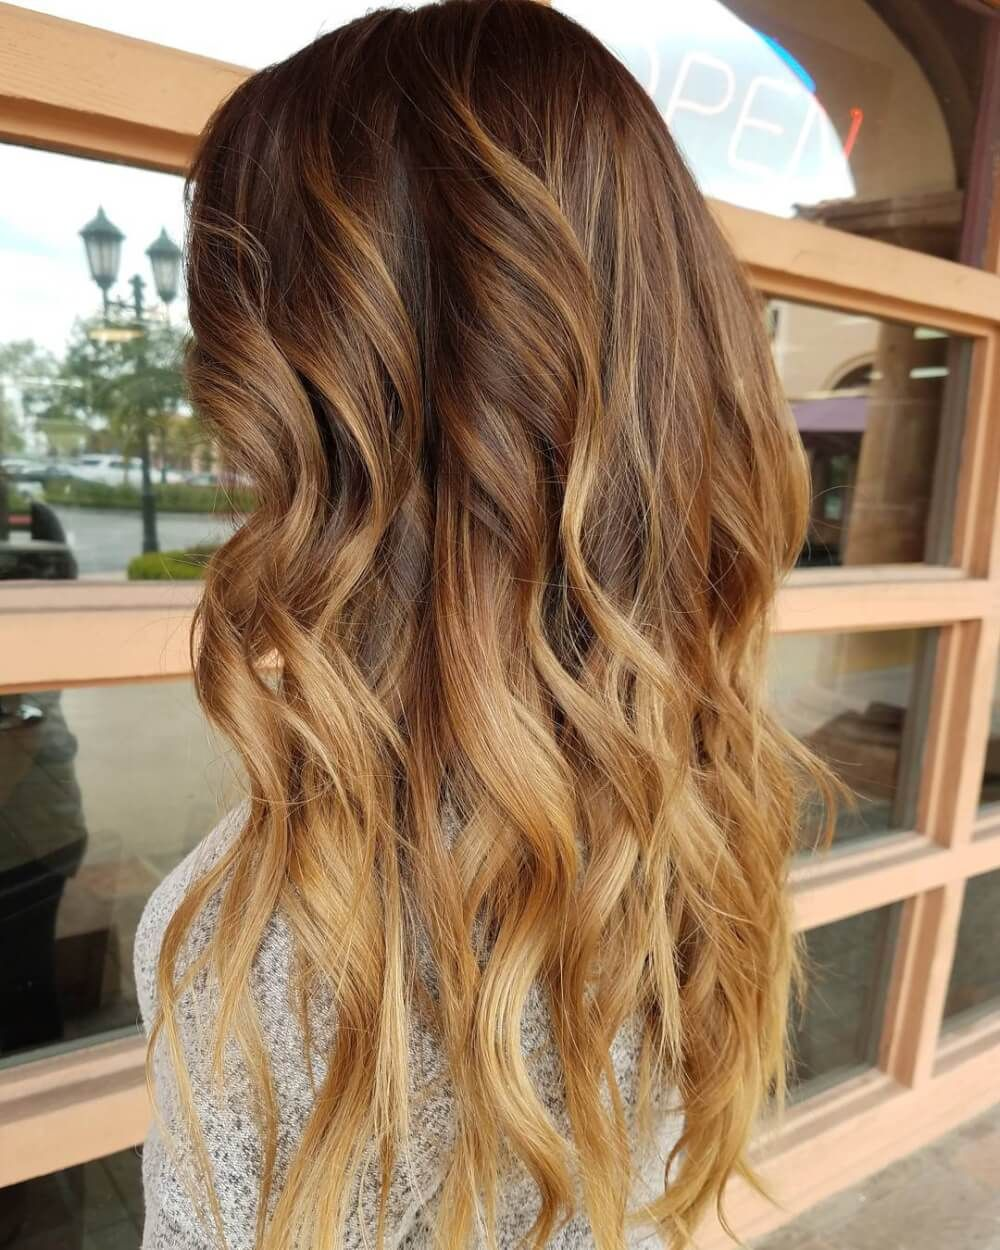 Warm Light Brown Toffee To Honey Ombre Hair Color Ombre Hair Blonde Light Brown Hair Hair Color Light Brown